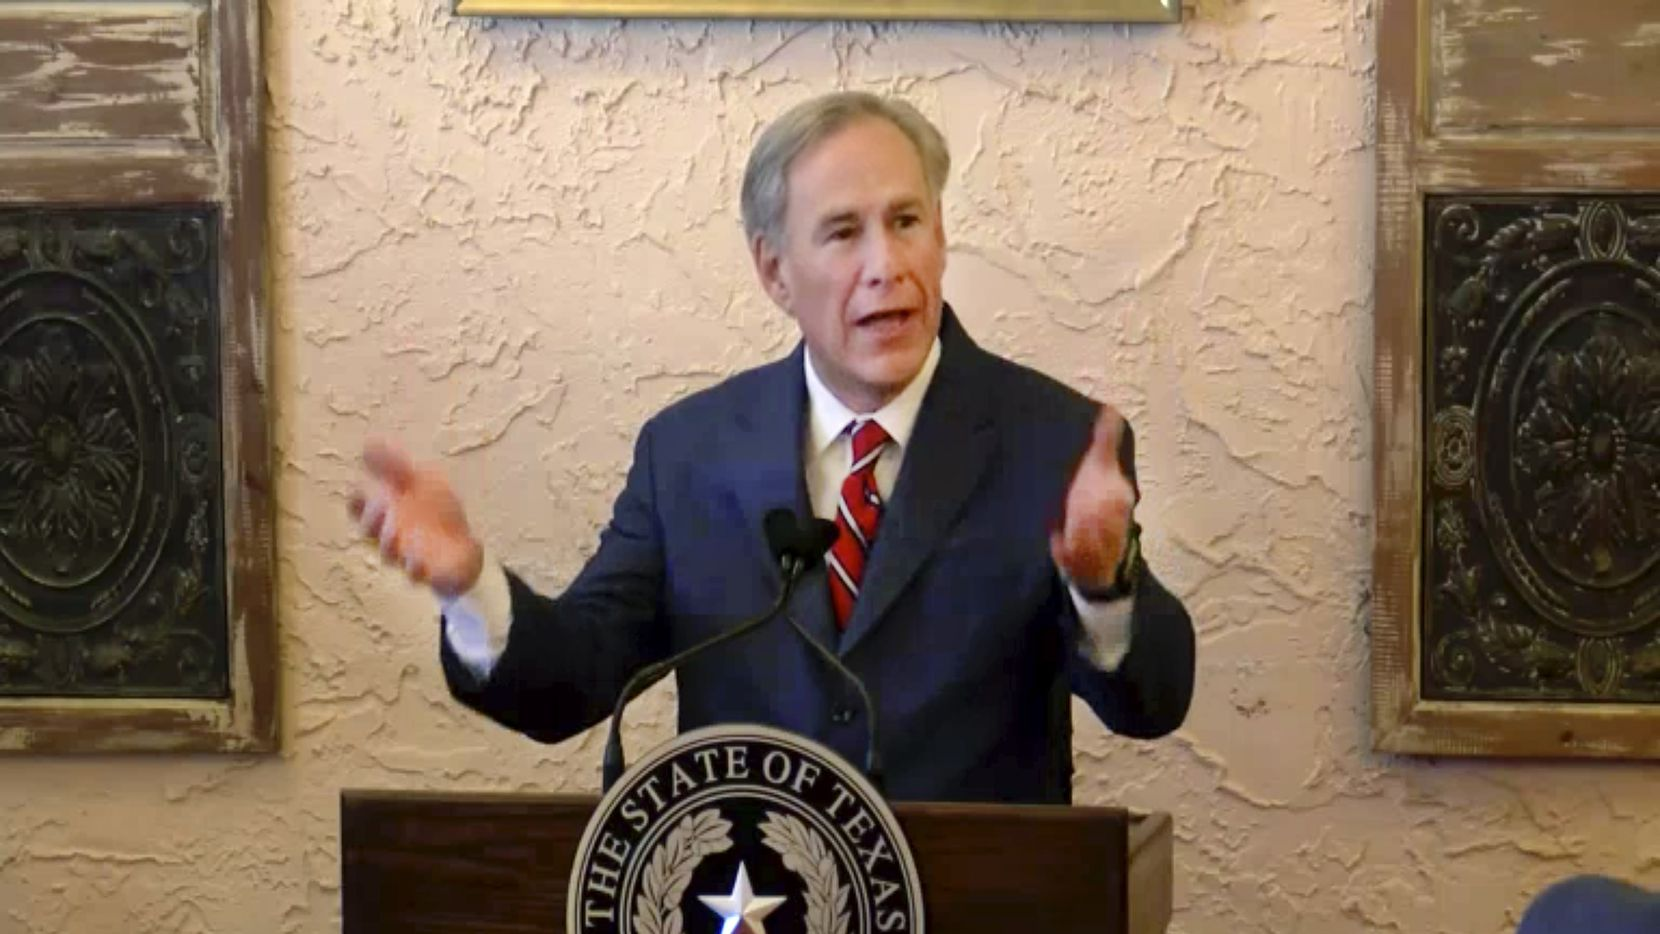 Texas Gov. Greg Abbott delivers a speech at a Lubbock restaurant March 2, 2021. Coming up on the one-year anniversary of the COVID-19 pandemic, Abbott announced reopening the state to all businesses. (video via KXAS-TV Dallas)